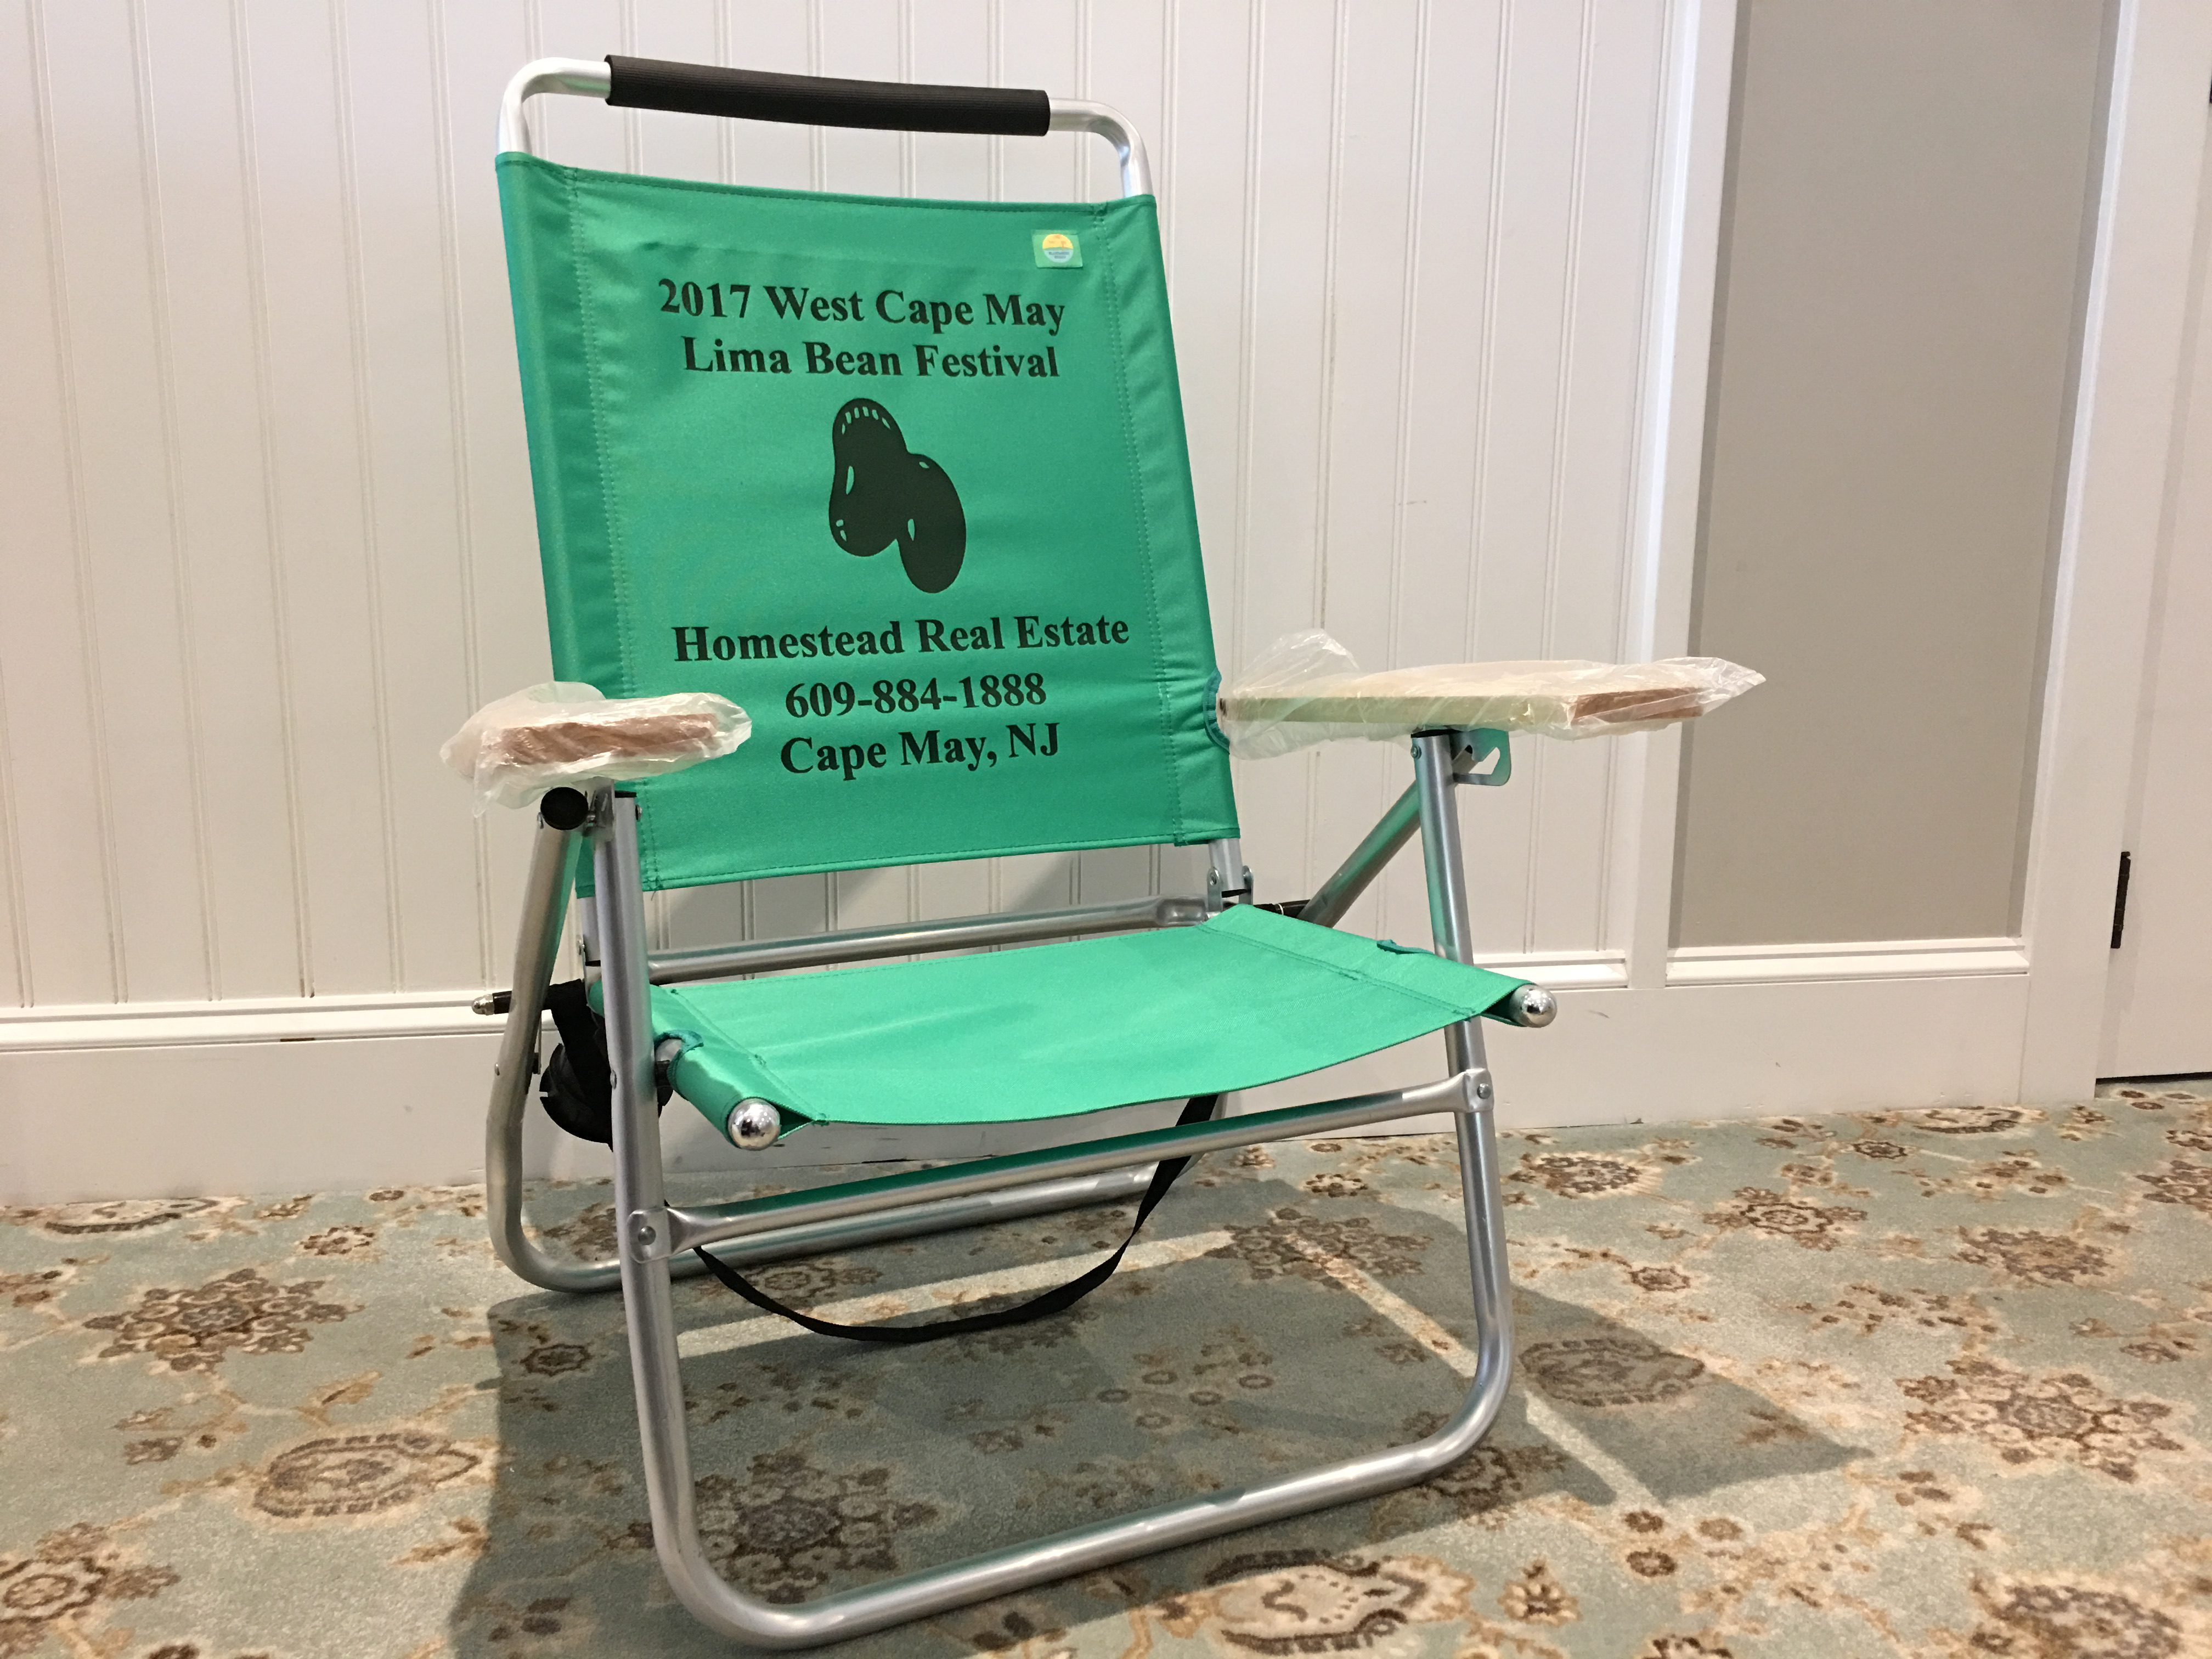 West Cape May Lima Bean Festival Archives - Homestead Cape May Rentals